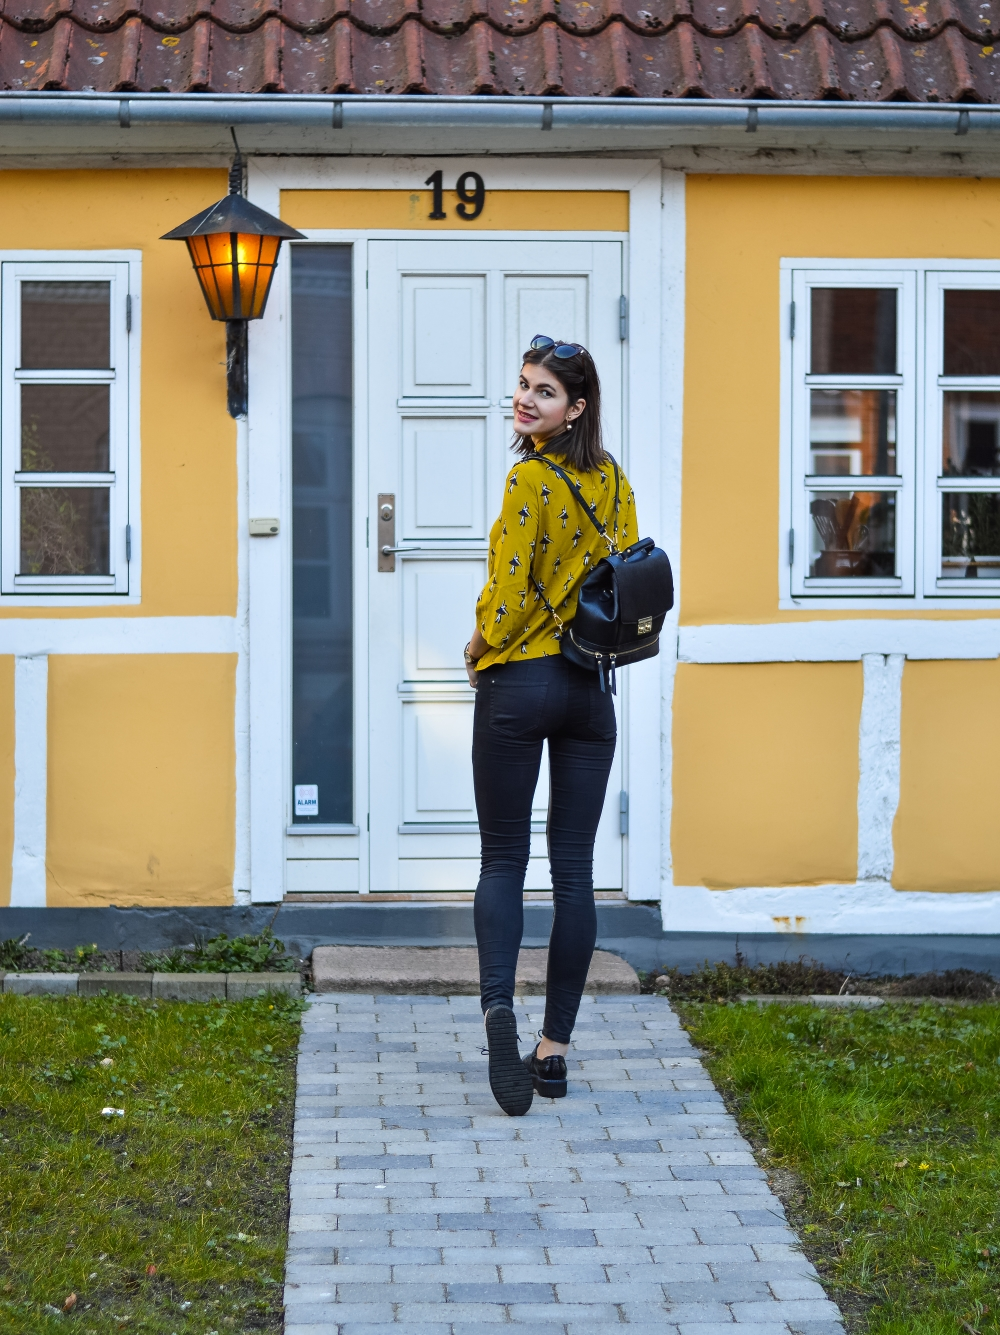 cafe gran,flowers,spring is here,mustard yellow,zara backpack,denmark horsens, clove pink,carnation,glamthug blog,daily style